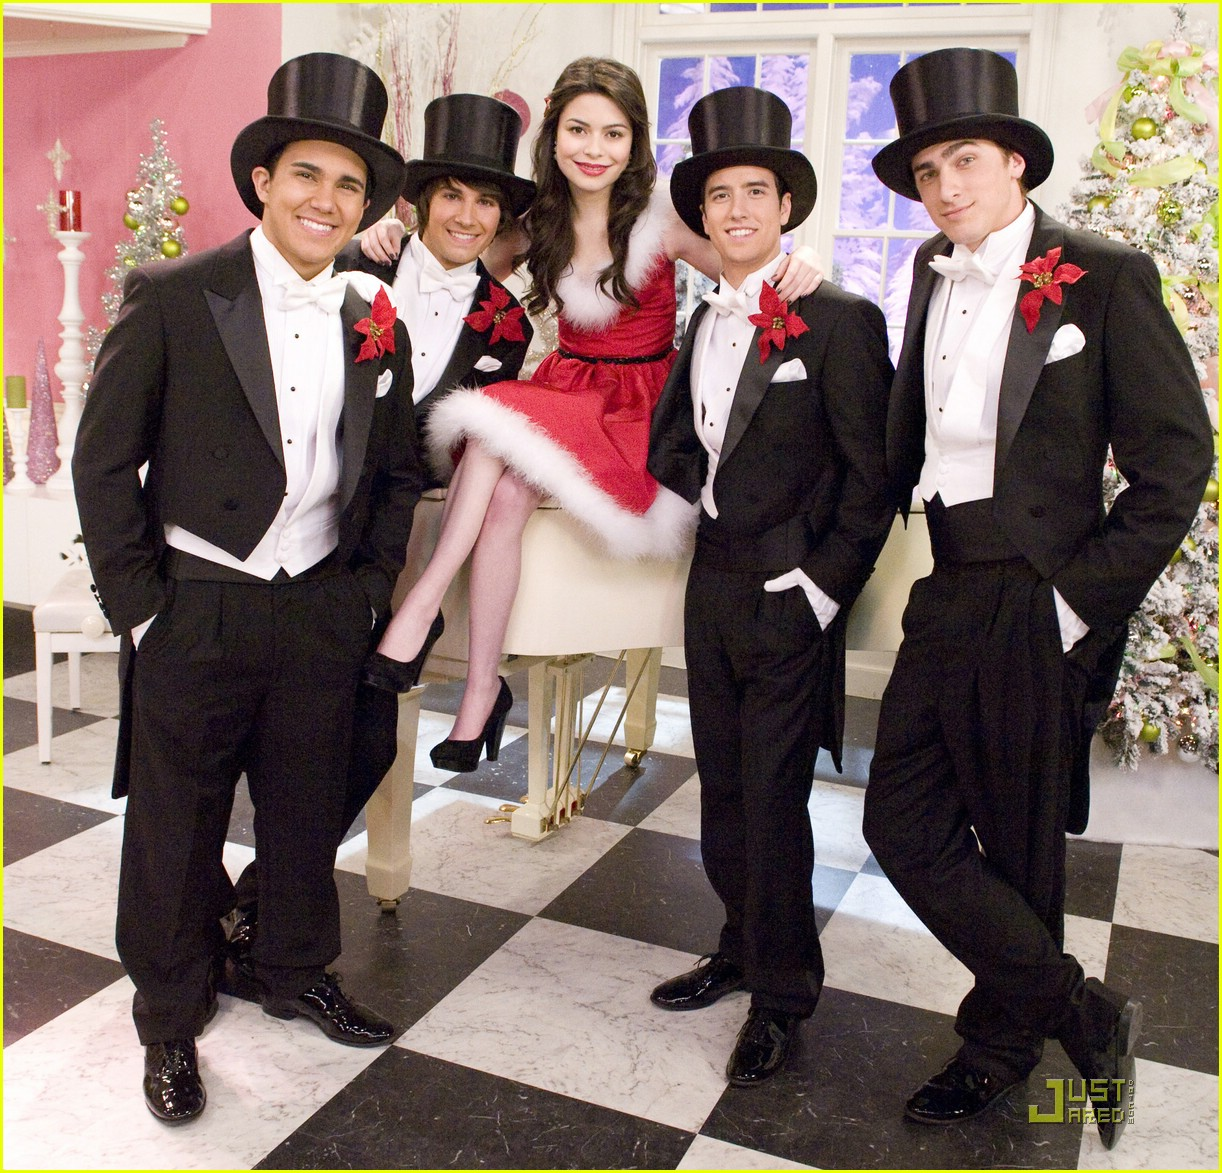 miranda cosgrove big time rush christmas 01 - Big Time Rush Christmas